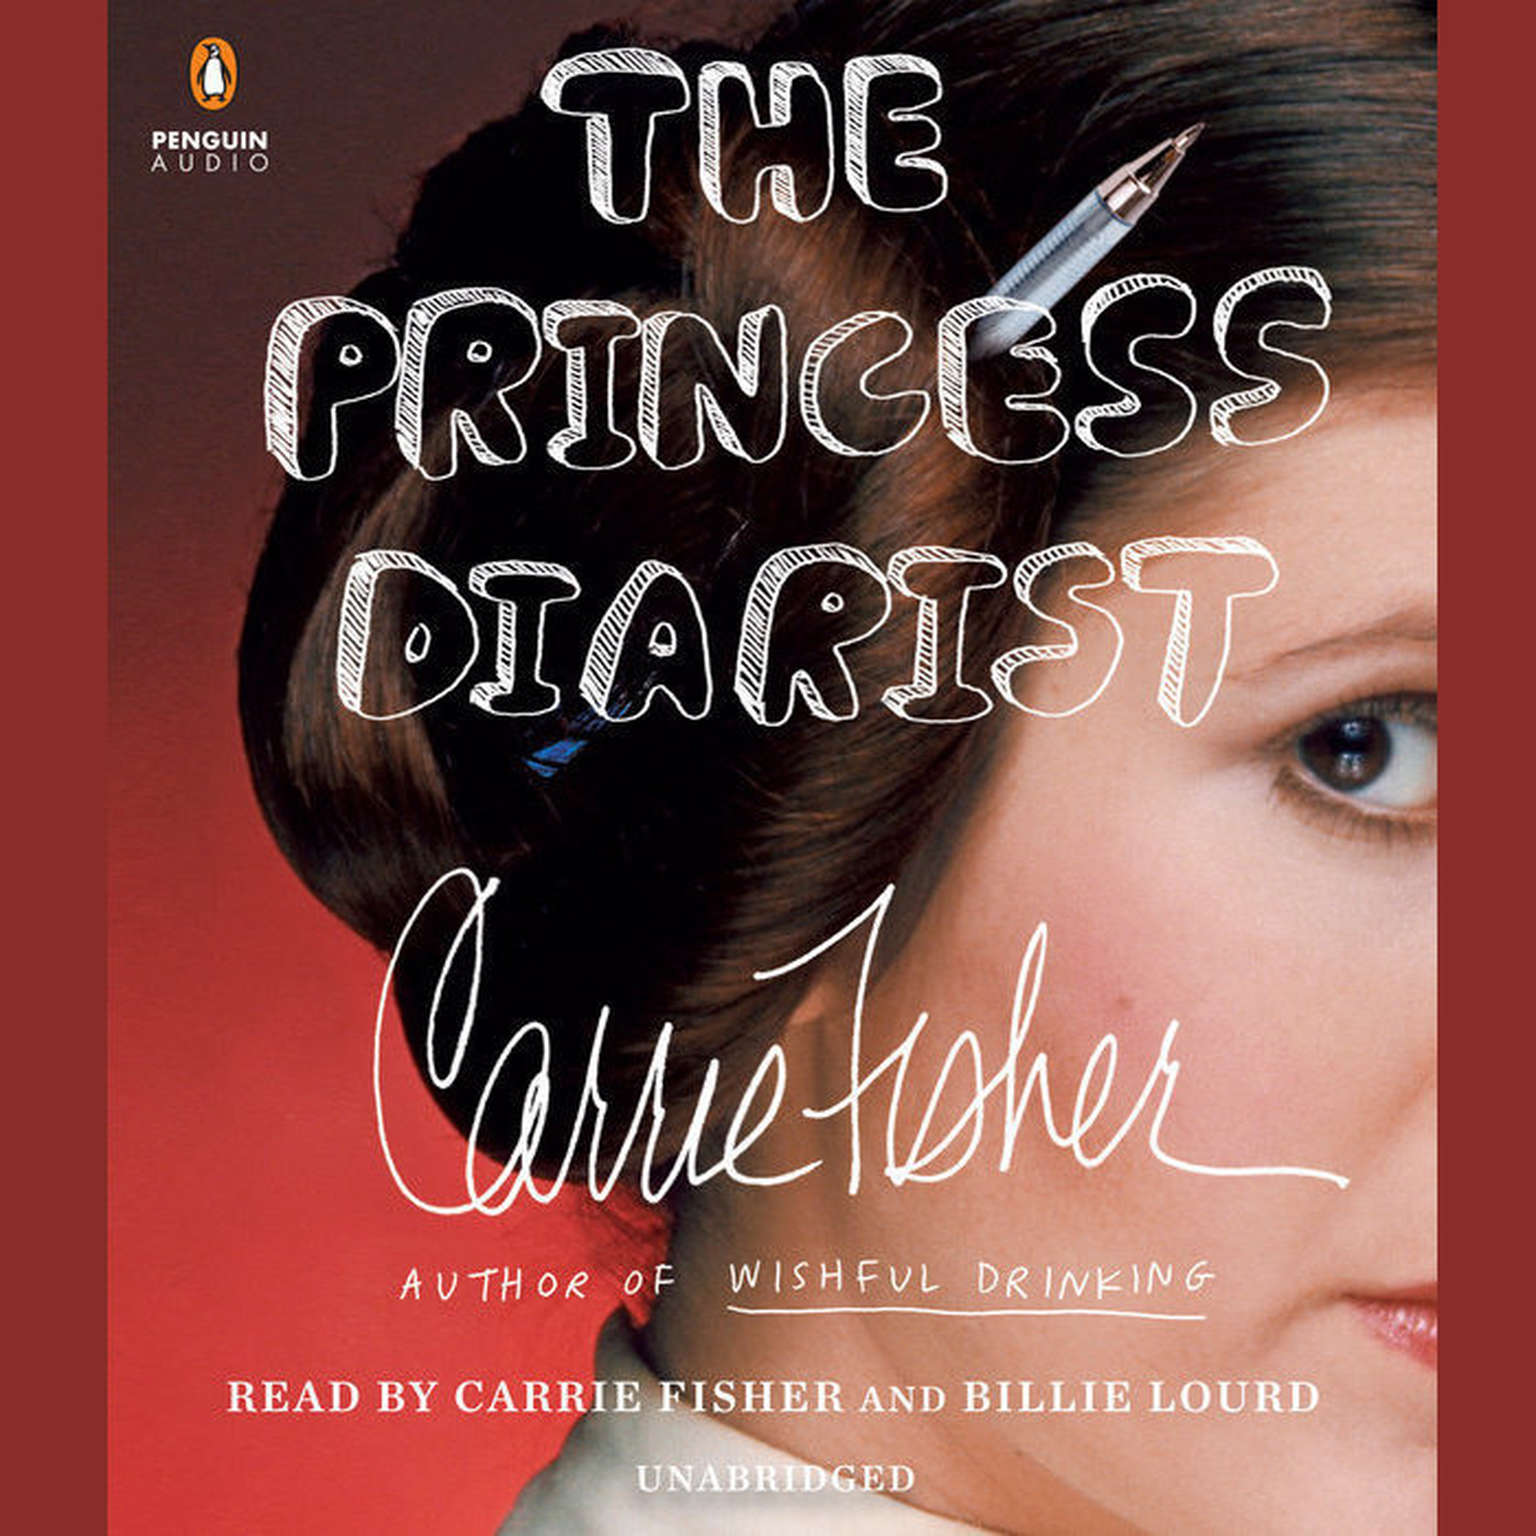 Carrie Fisher's 'The Princess Diarist' is now available as audiobook